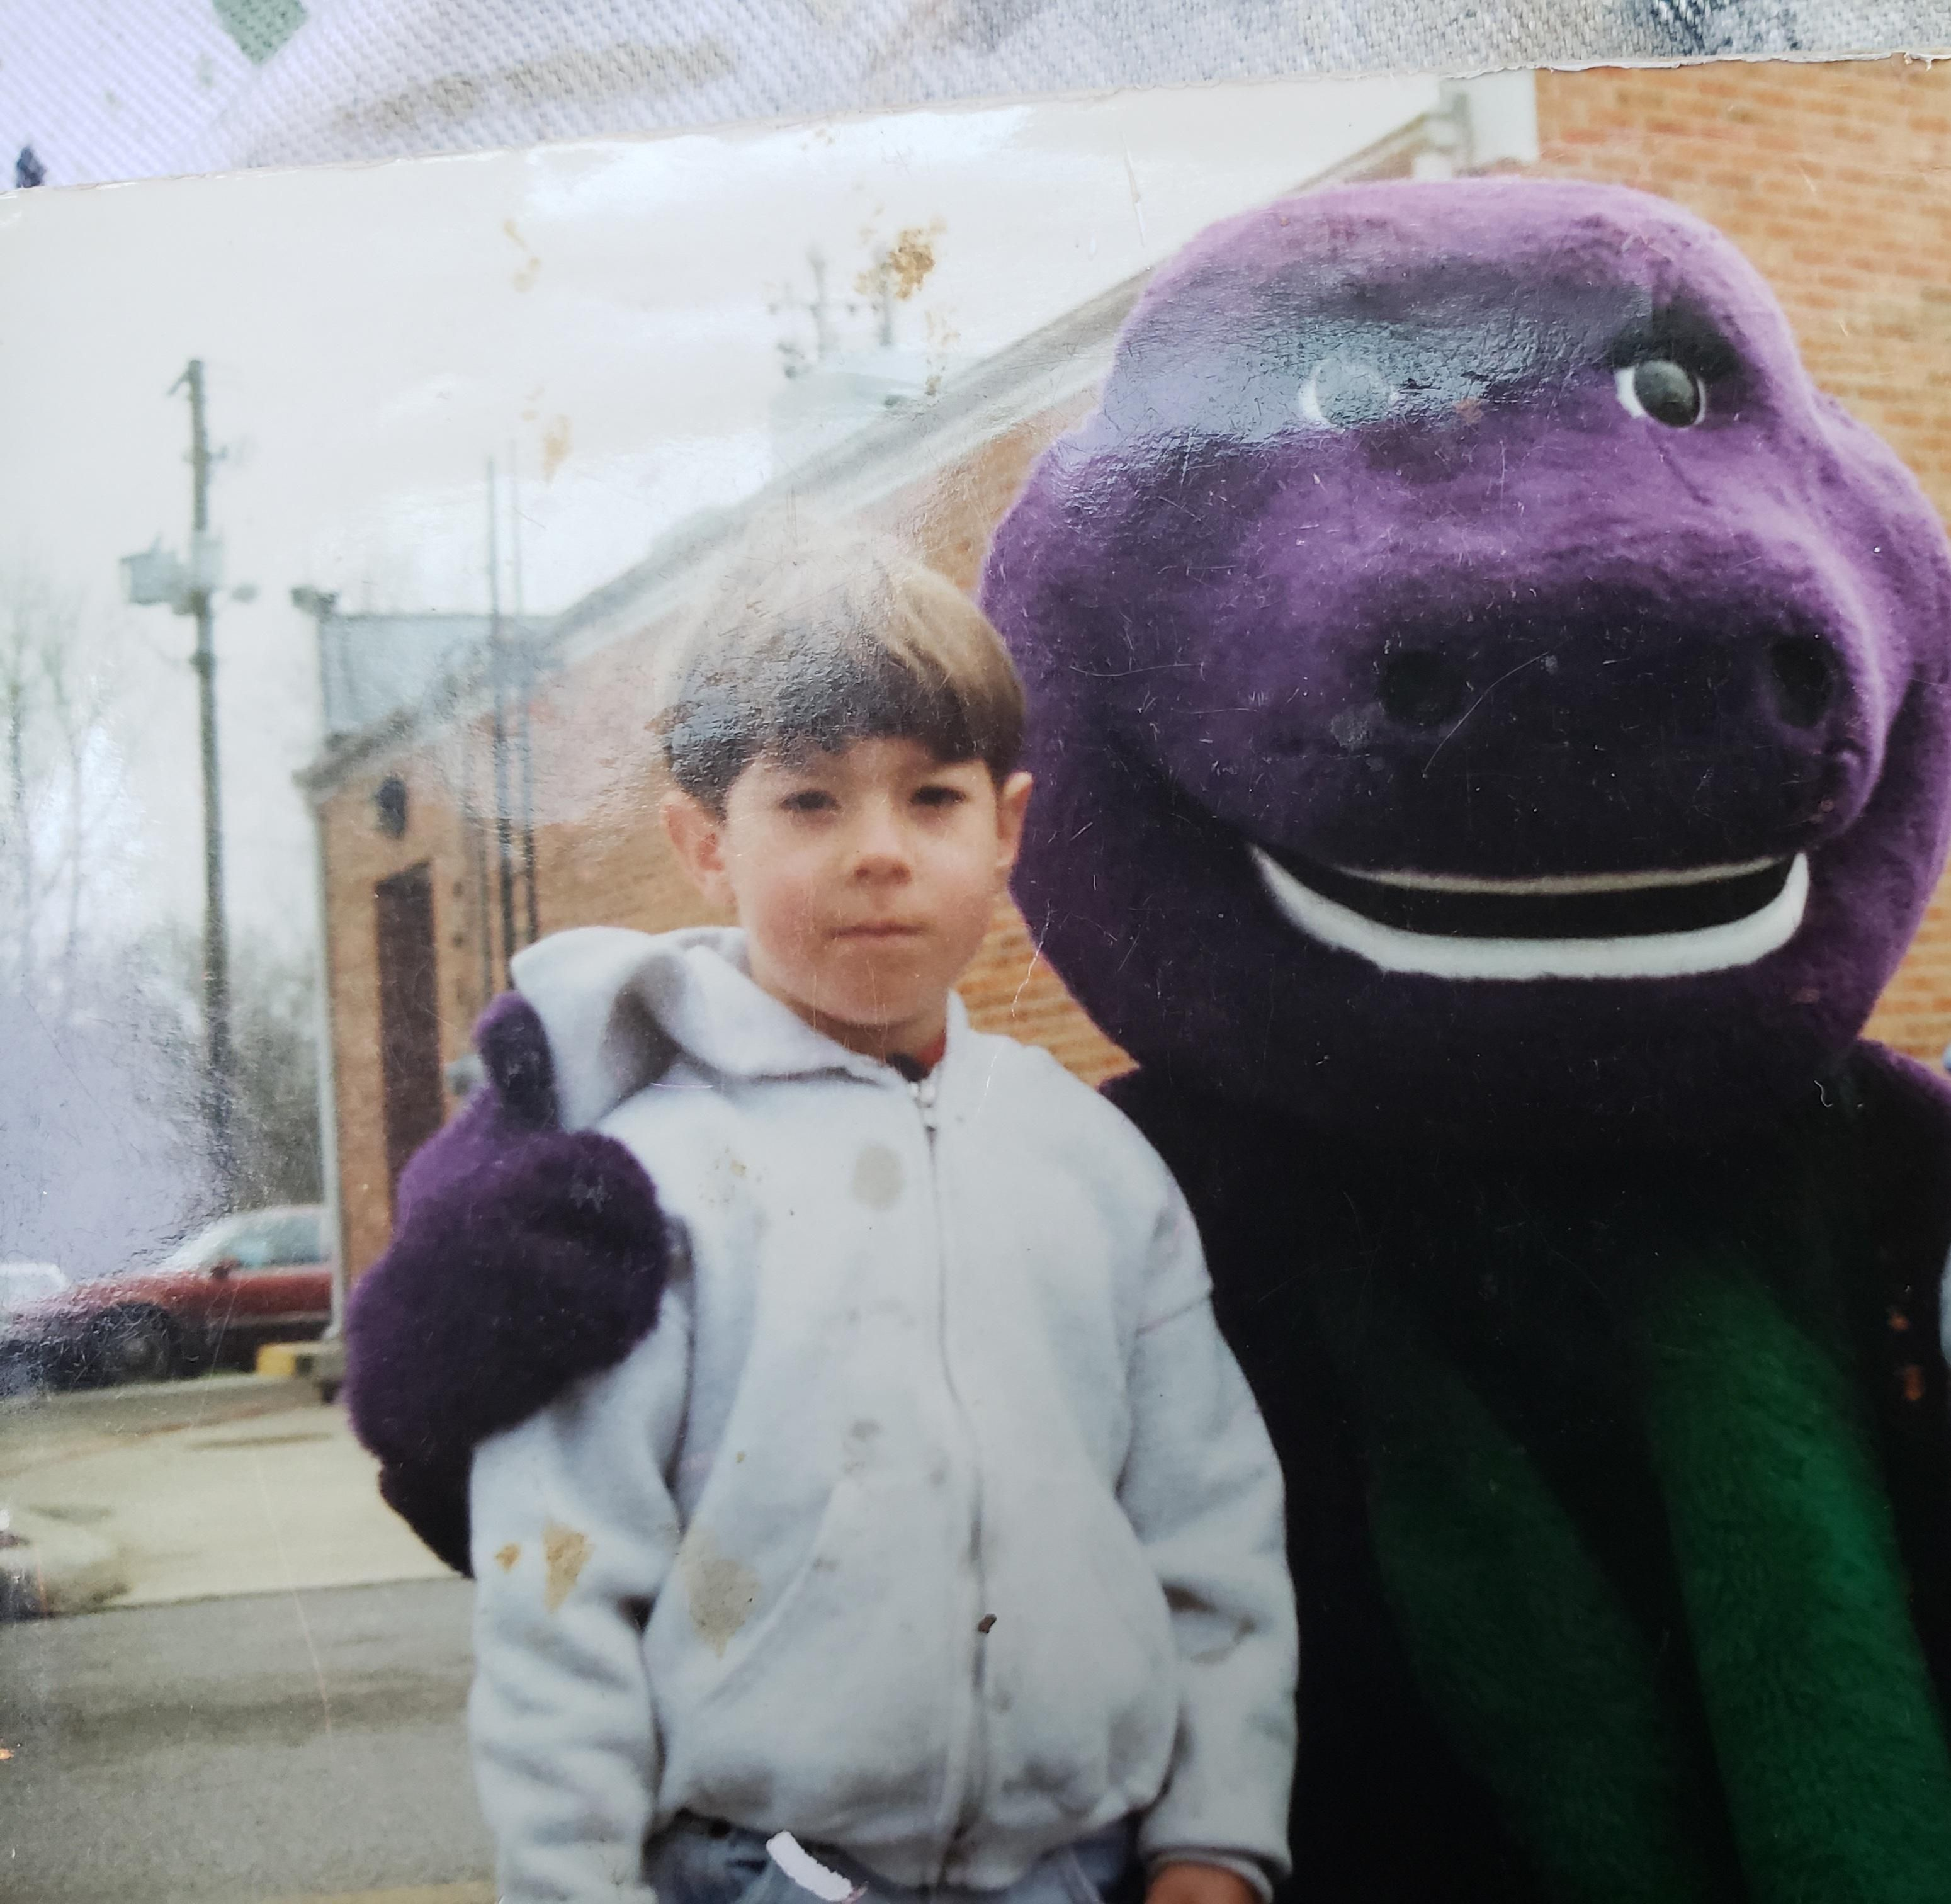 This was the day I found out that Barney was just a guy in a costume.